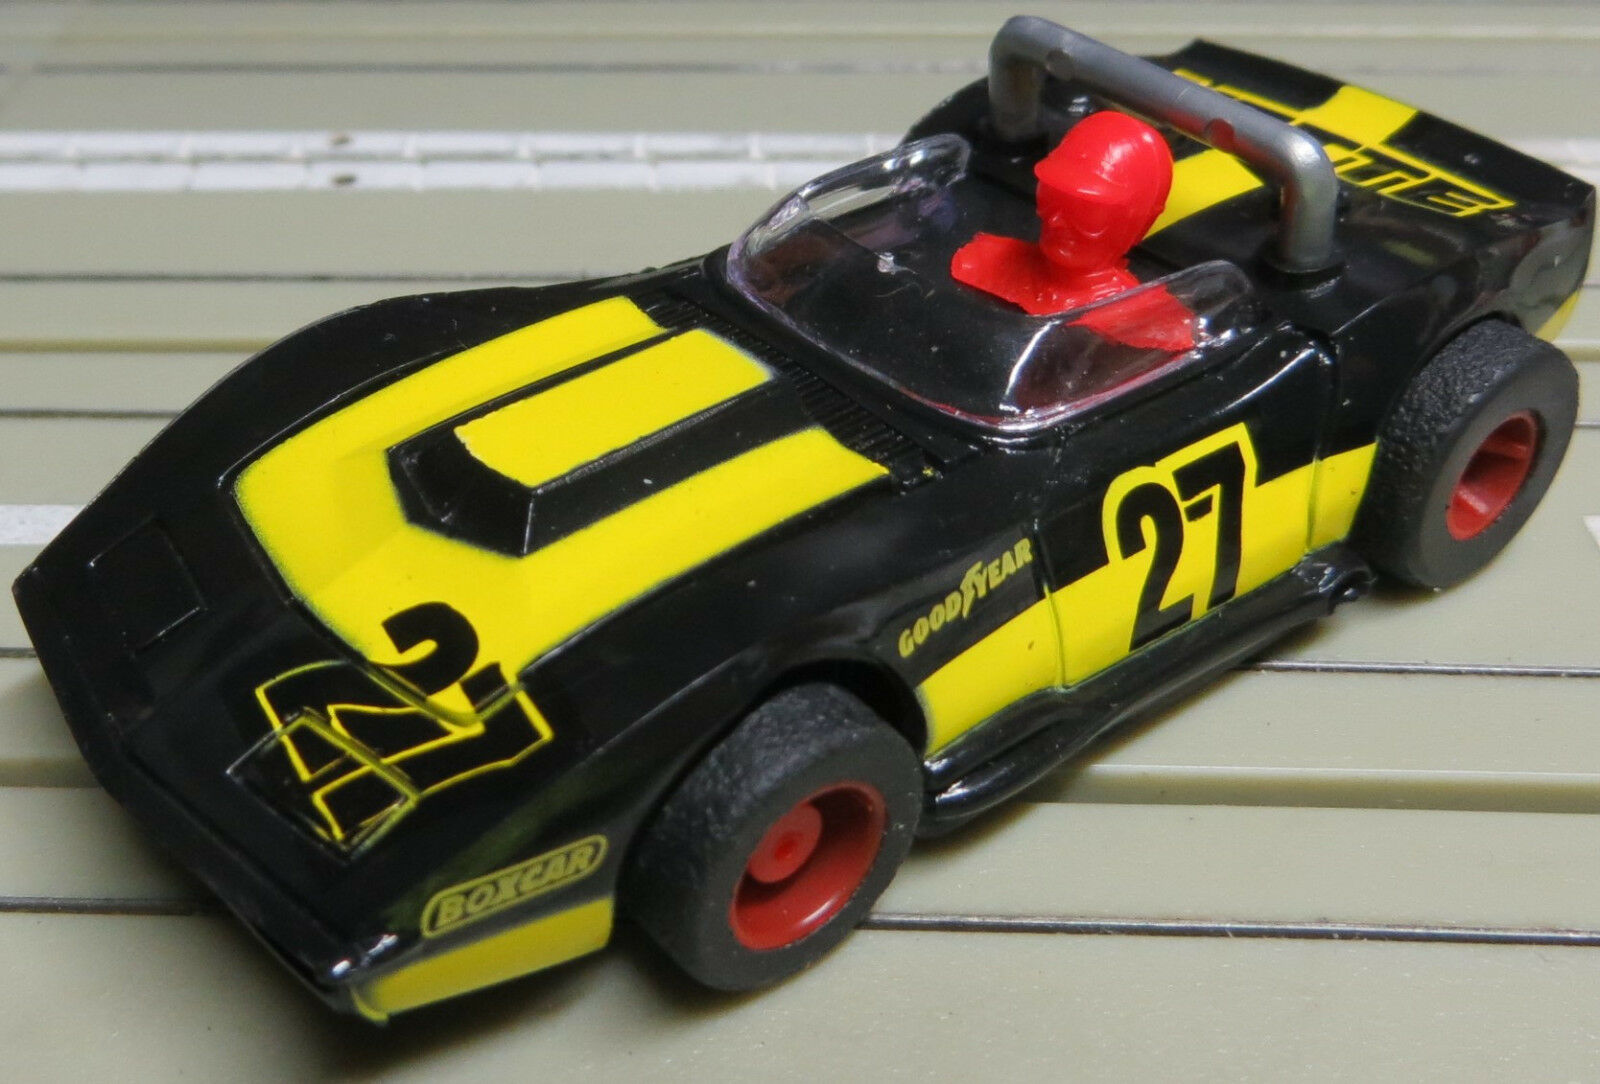 For H0 Slotcar Racing Model Railway Corvette Cabriolet with Tyco Engine